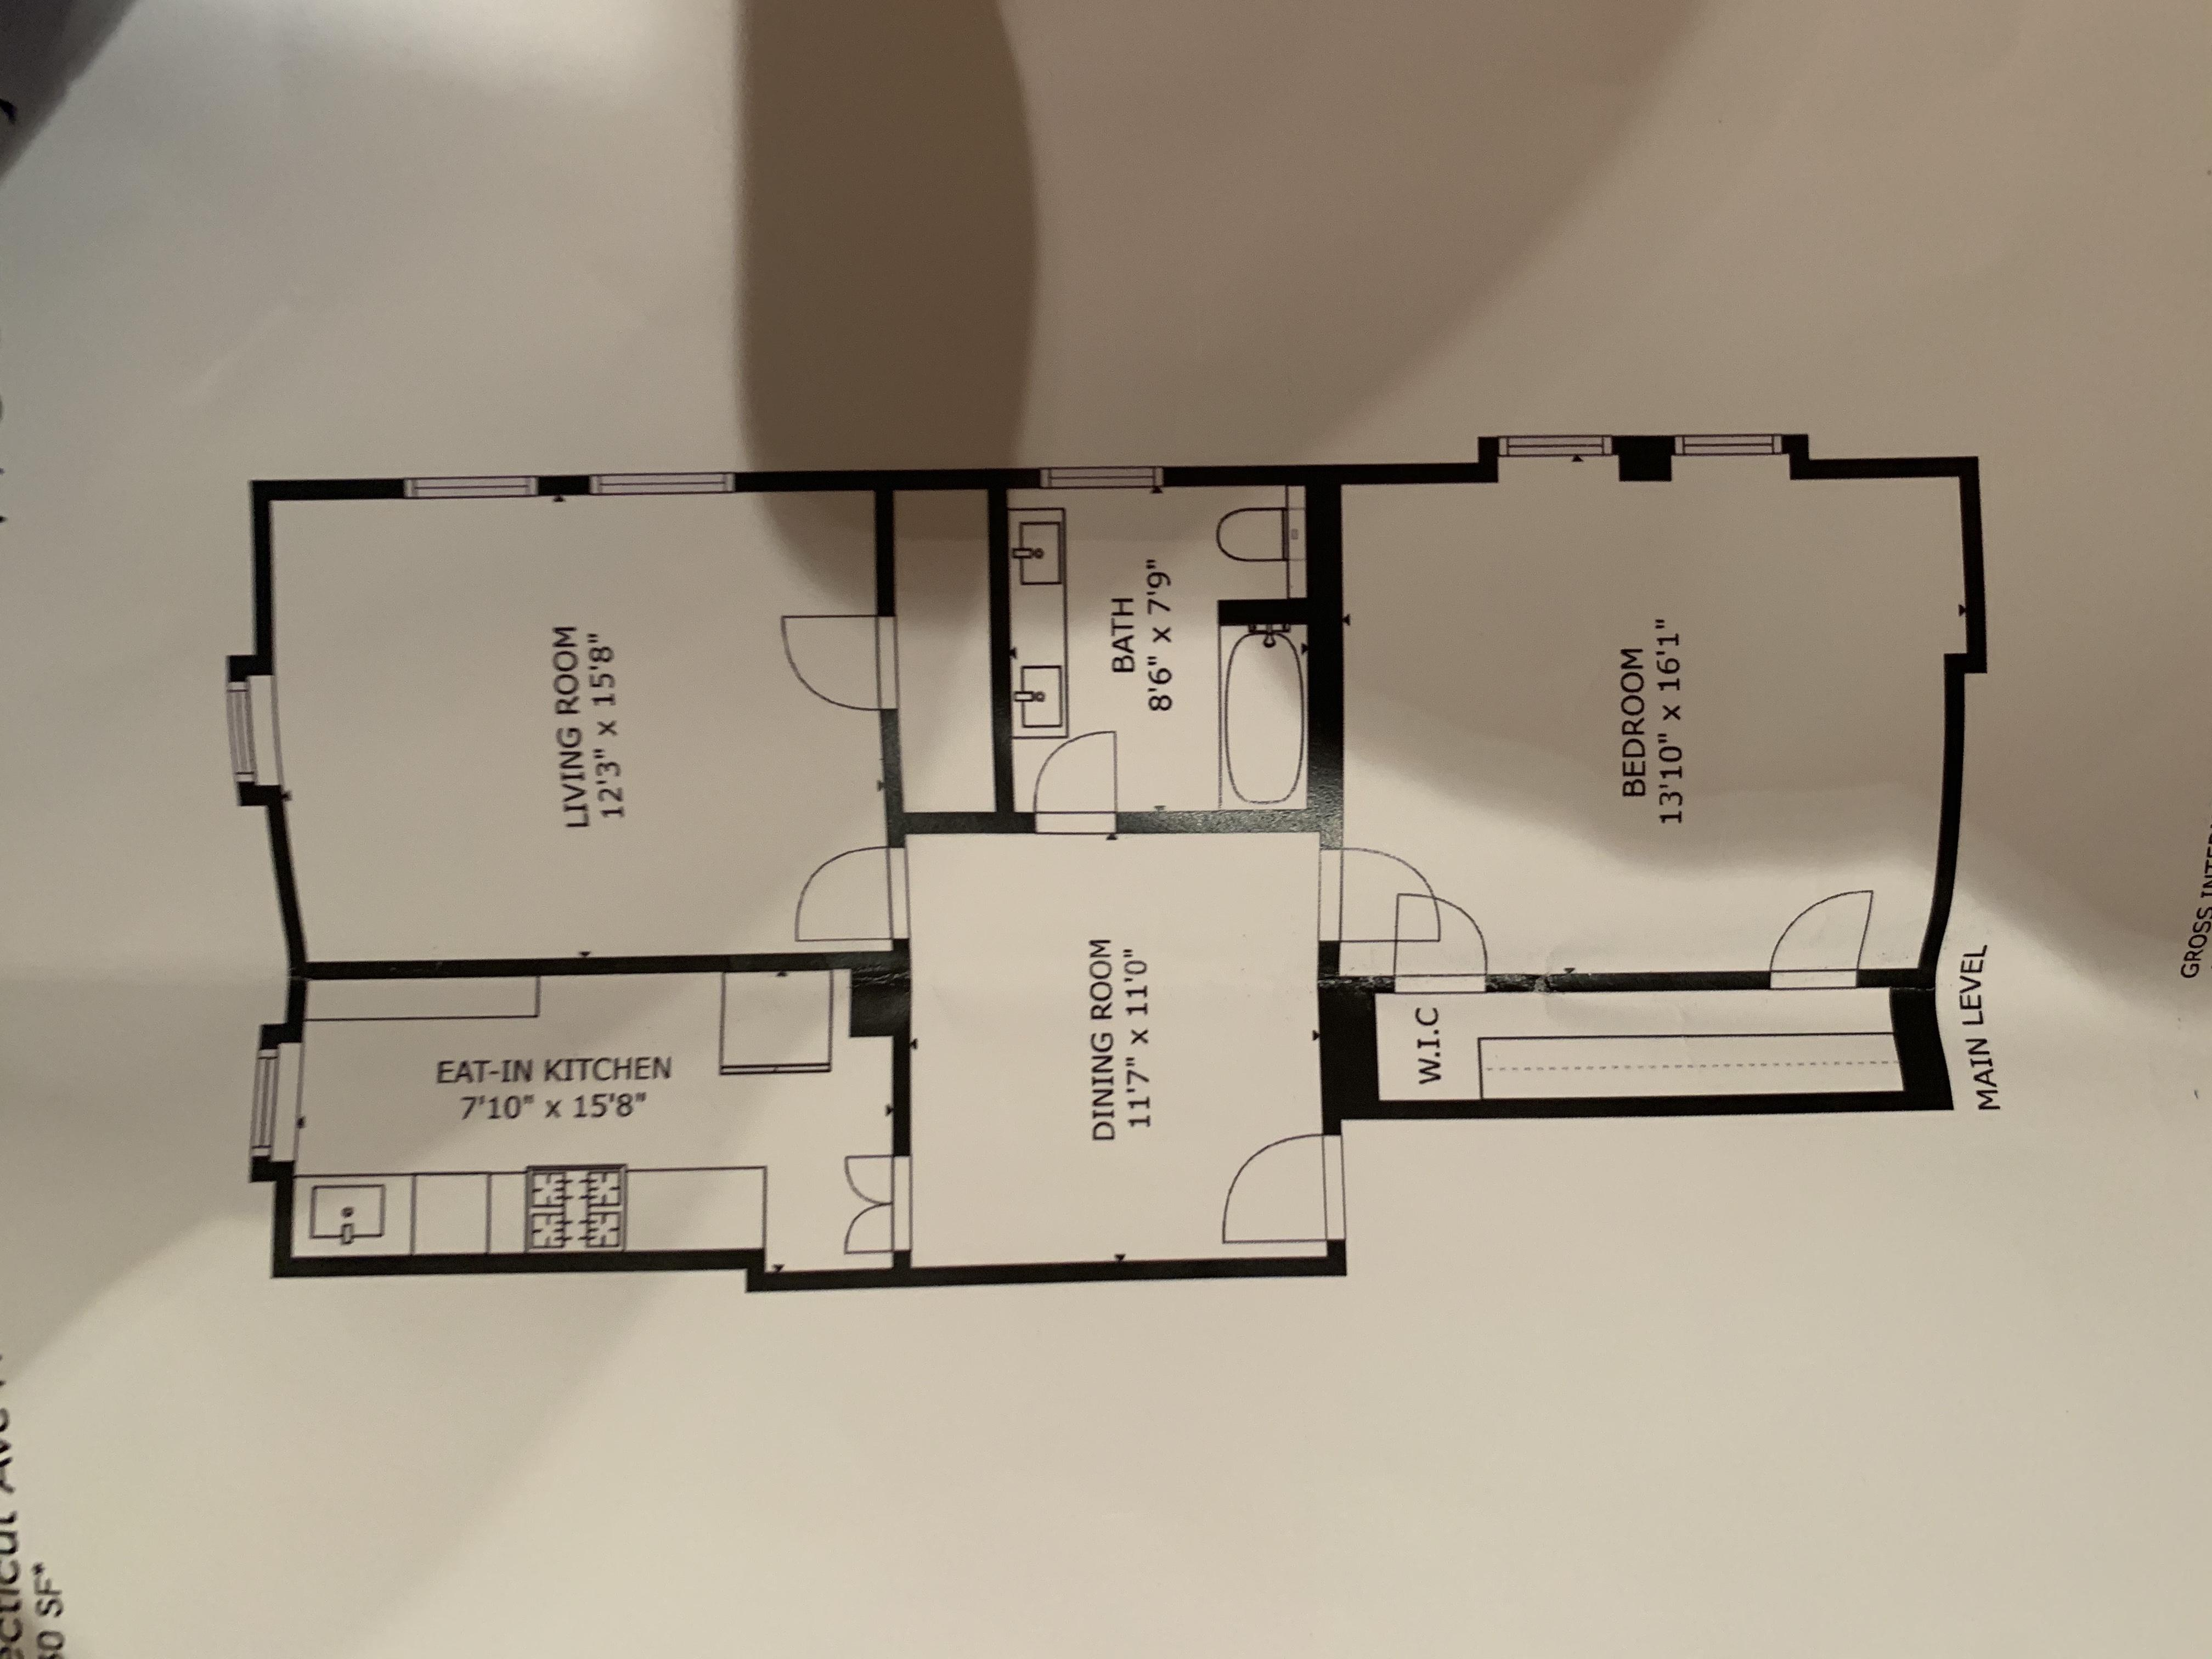 Spacious 1 Bed Condo Redesigned For 2 Beds Floorplan